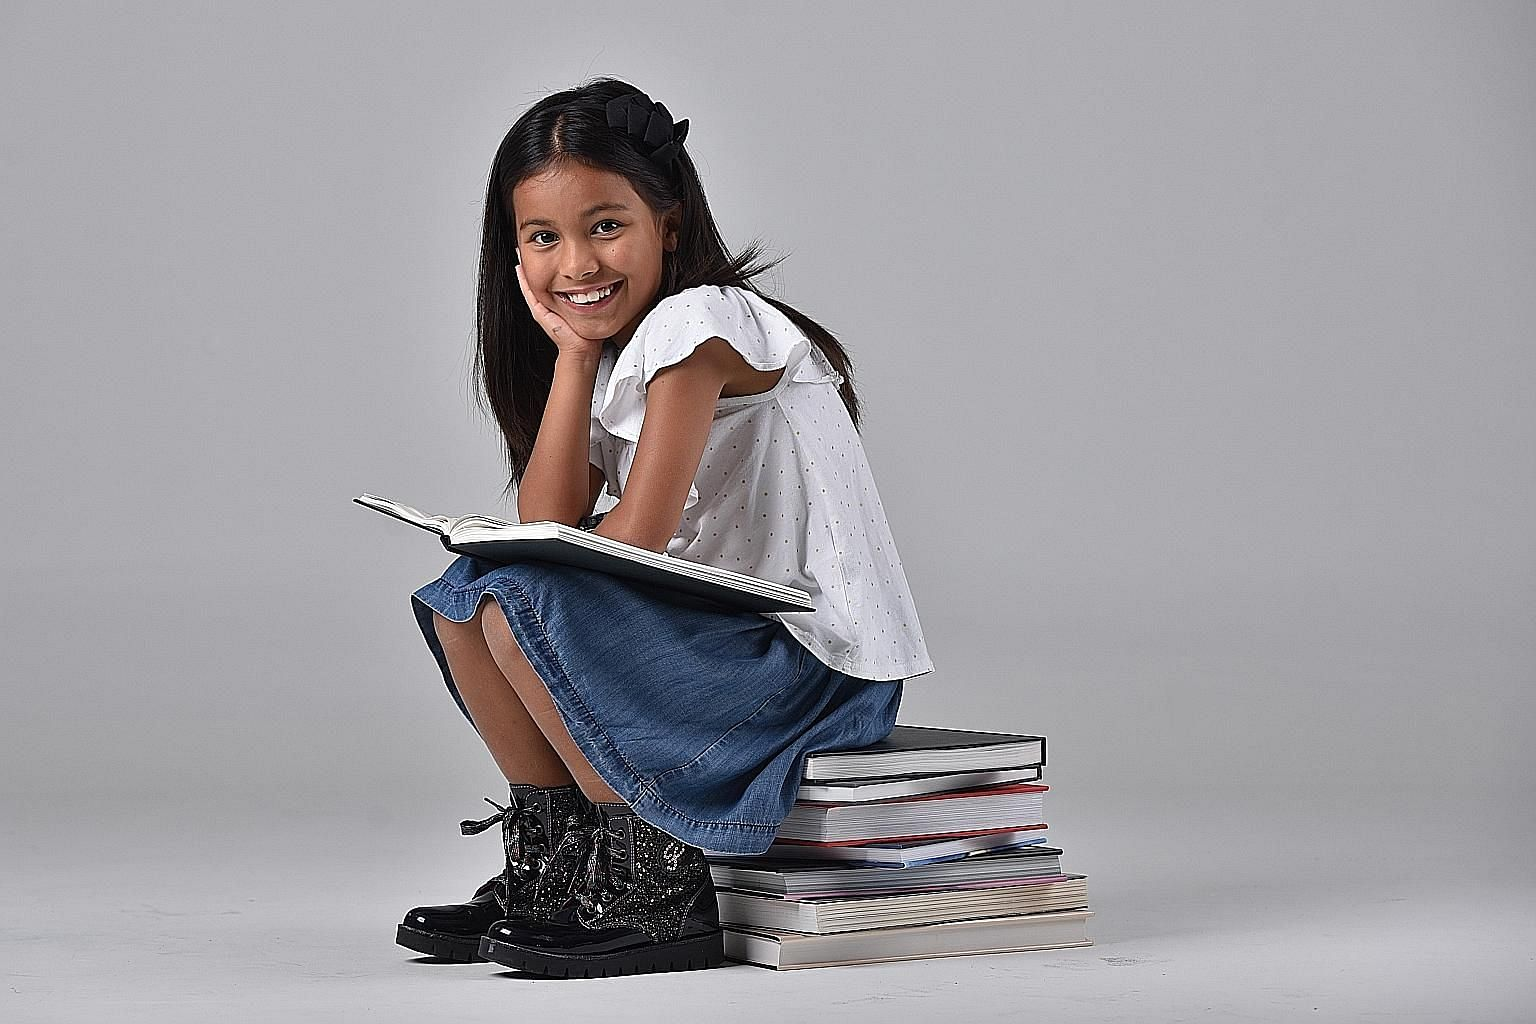 Nine-year-old Sofia Poston is one of four girls who will play the lead role in Matilda The Musical.